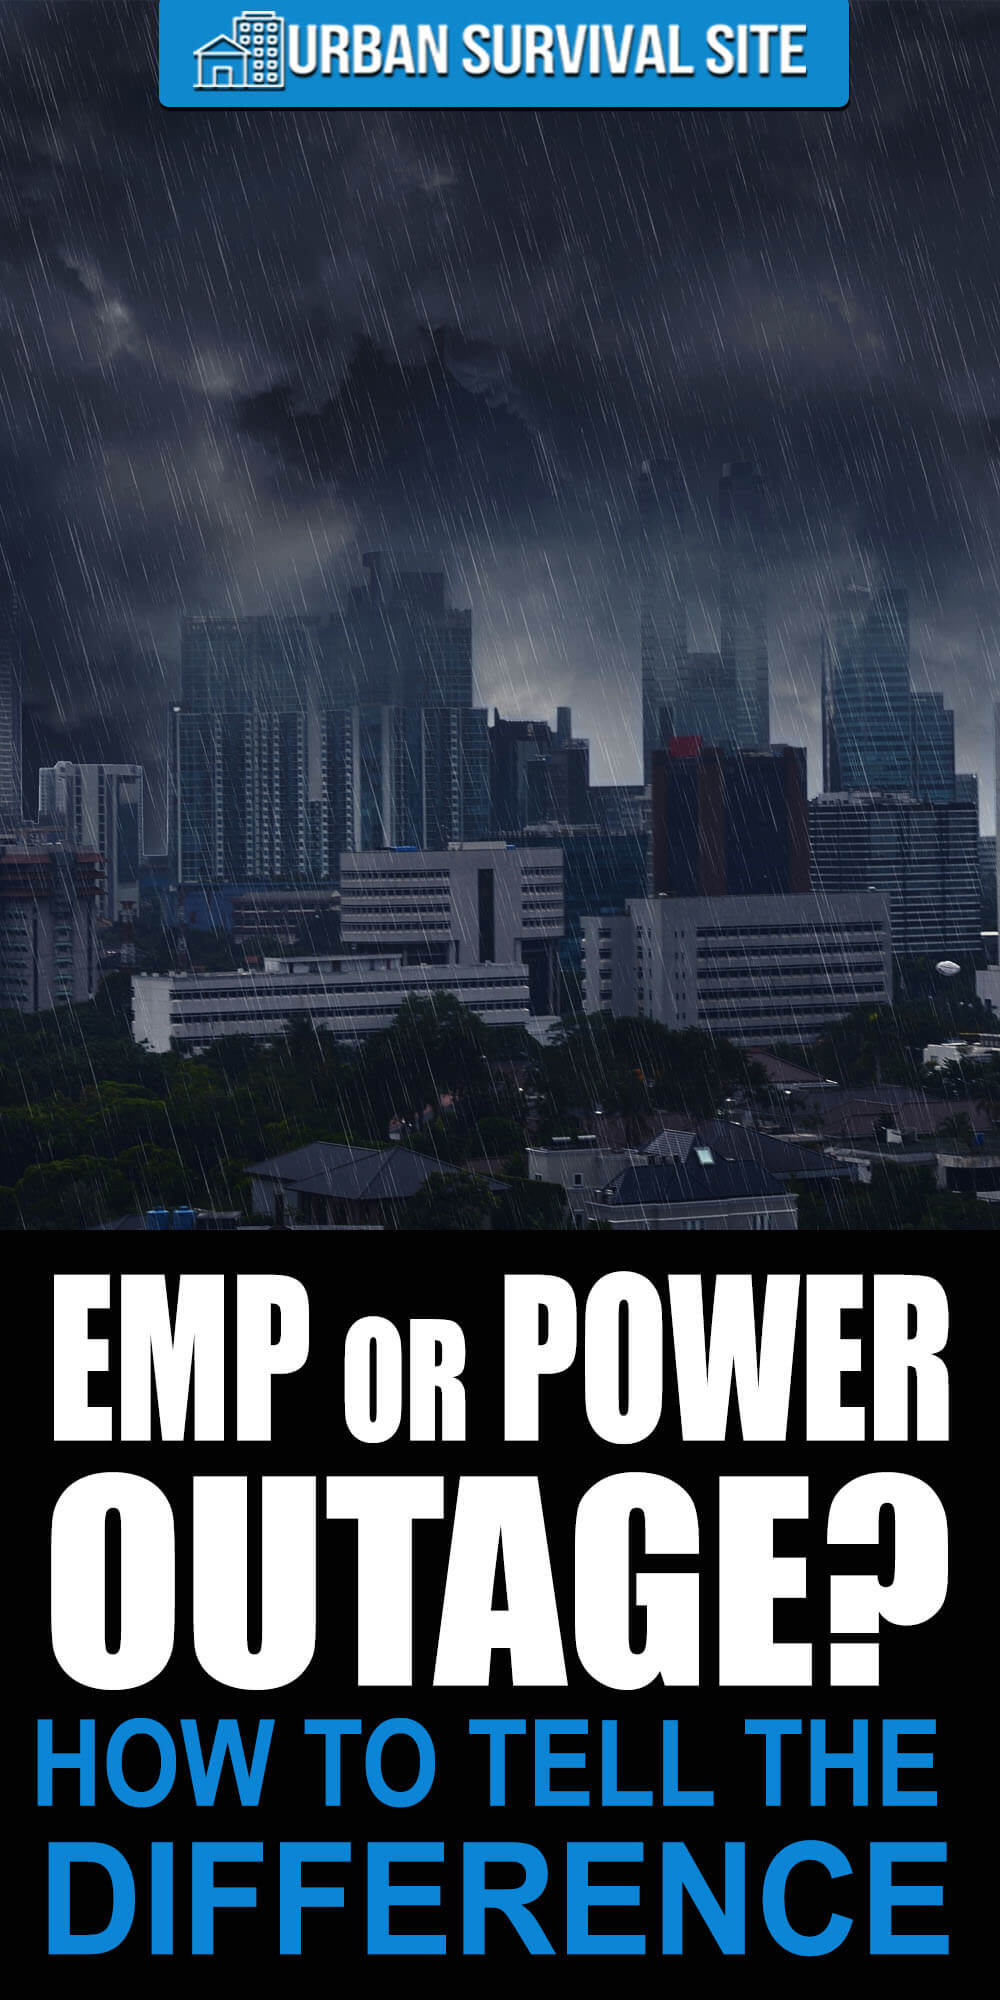 EMP or Power Outage? How to Tell the Difference